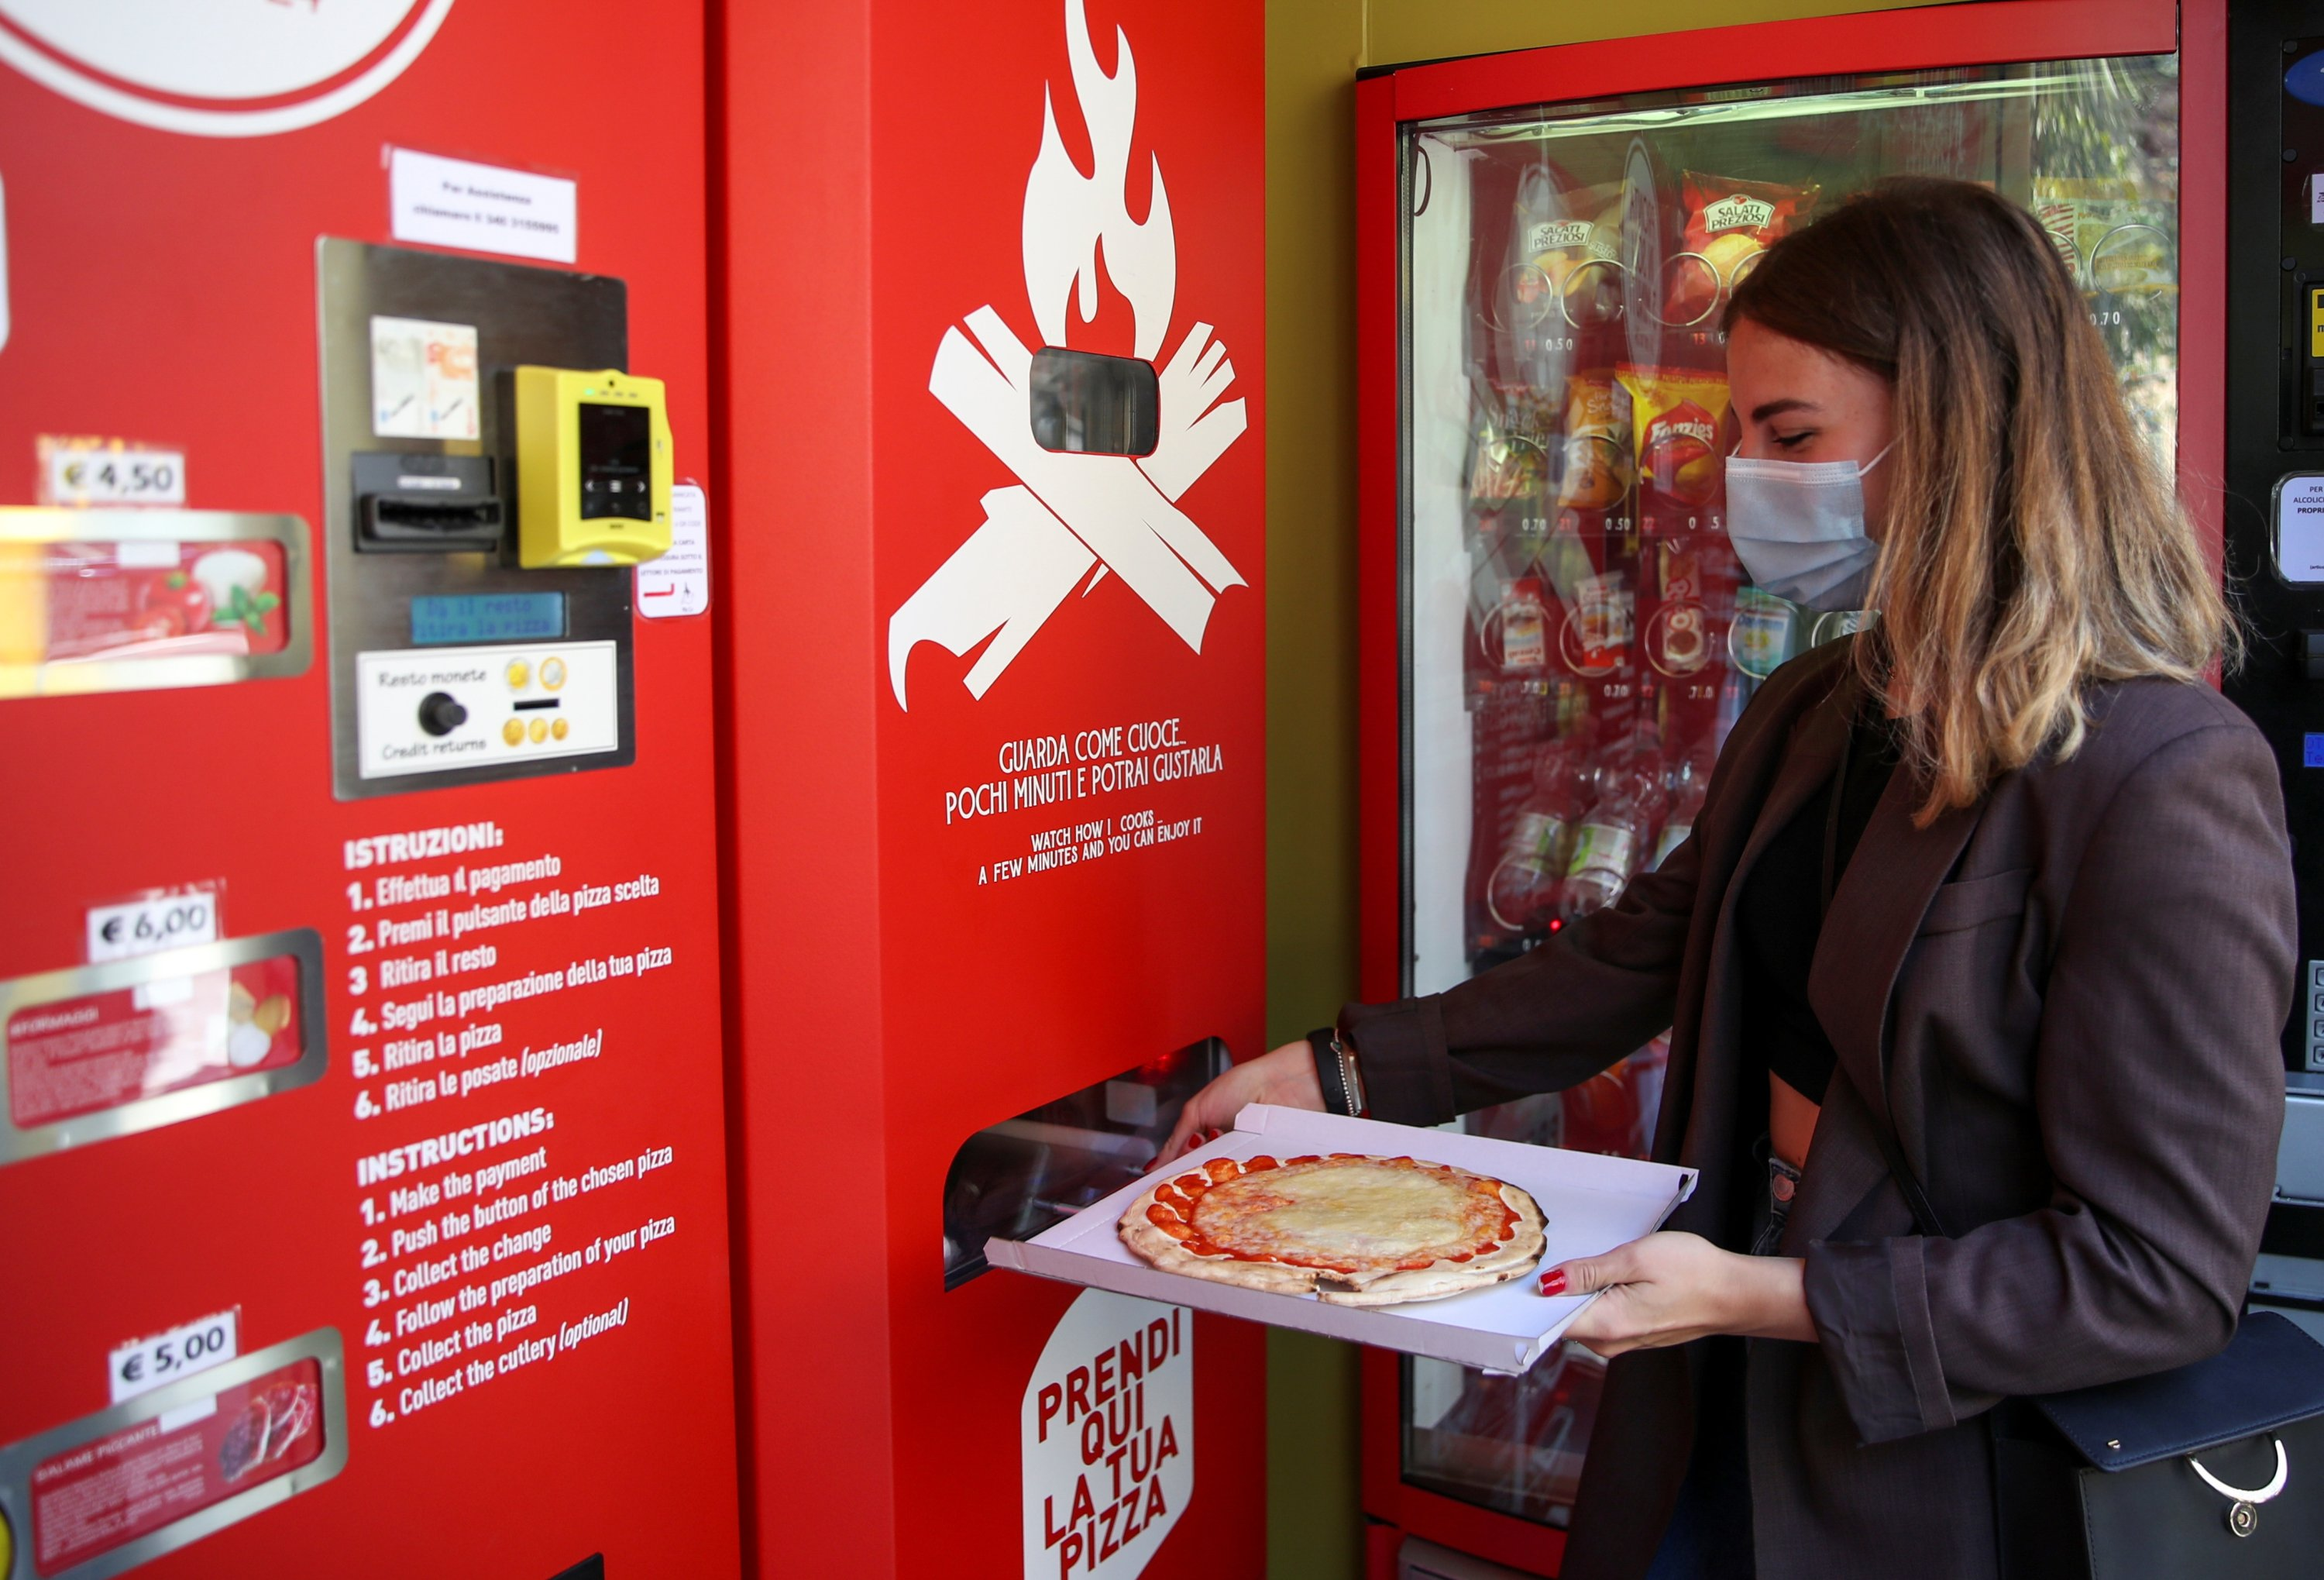 Fabrizia Pugliese collects her order at the first automatic pizza vending machine, which is capable of kneading, seasoning and cooking the pizza in three minutes, in Rome, Italy, May 6, 2021. (Reuters Photo)